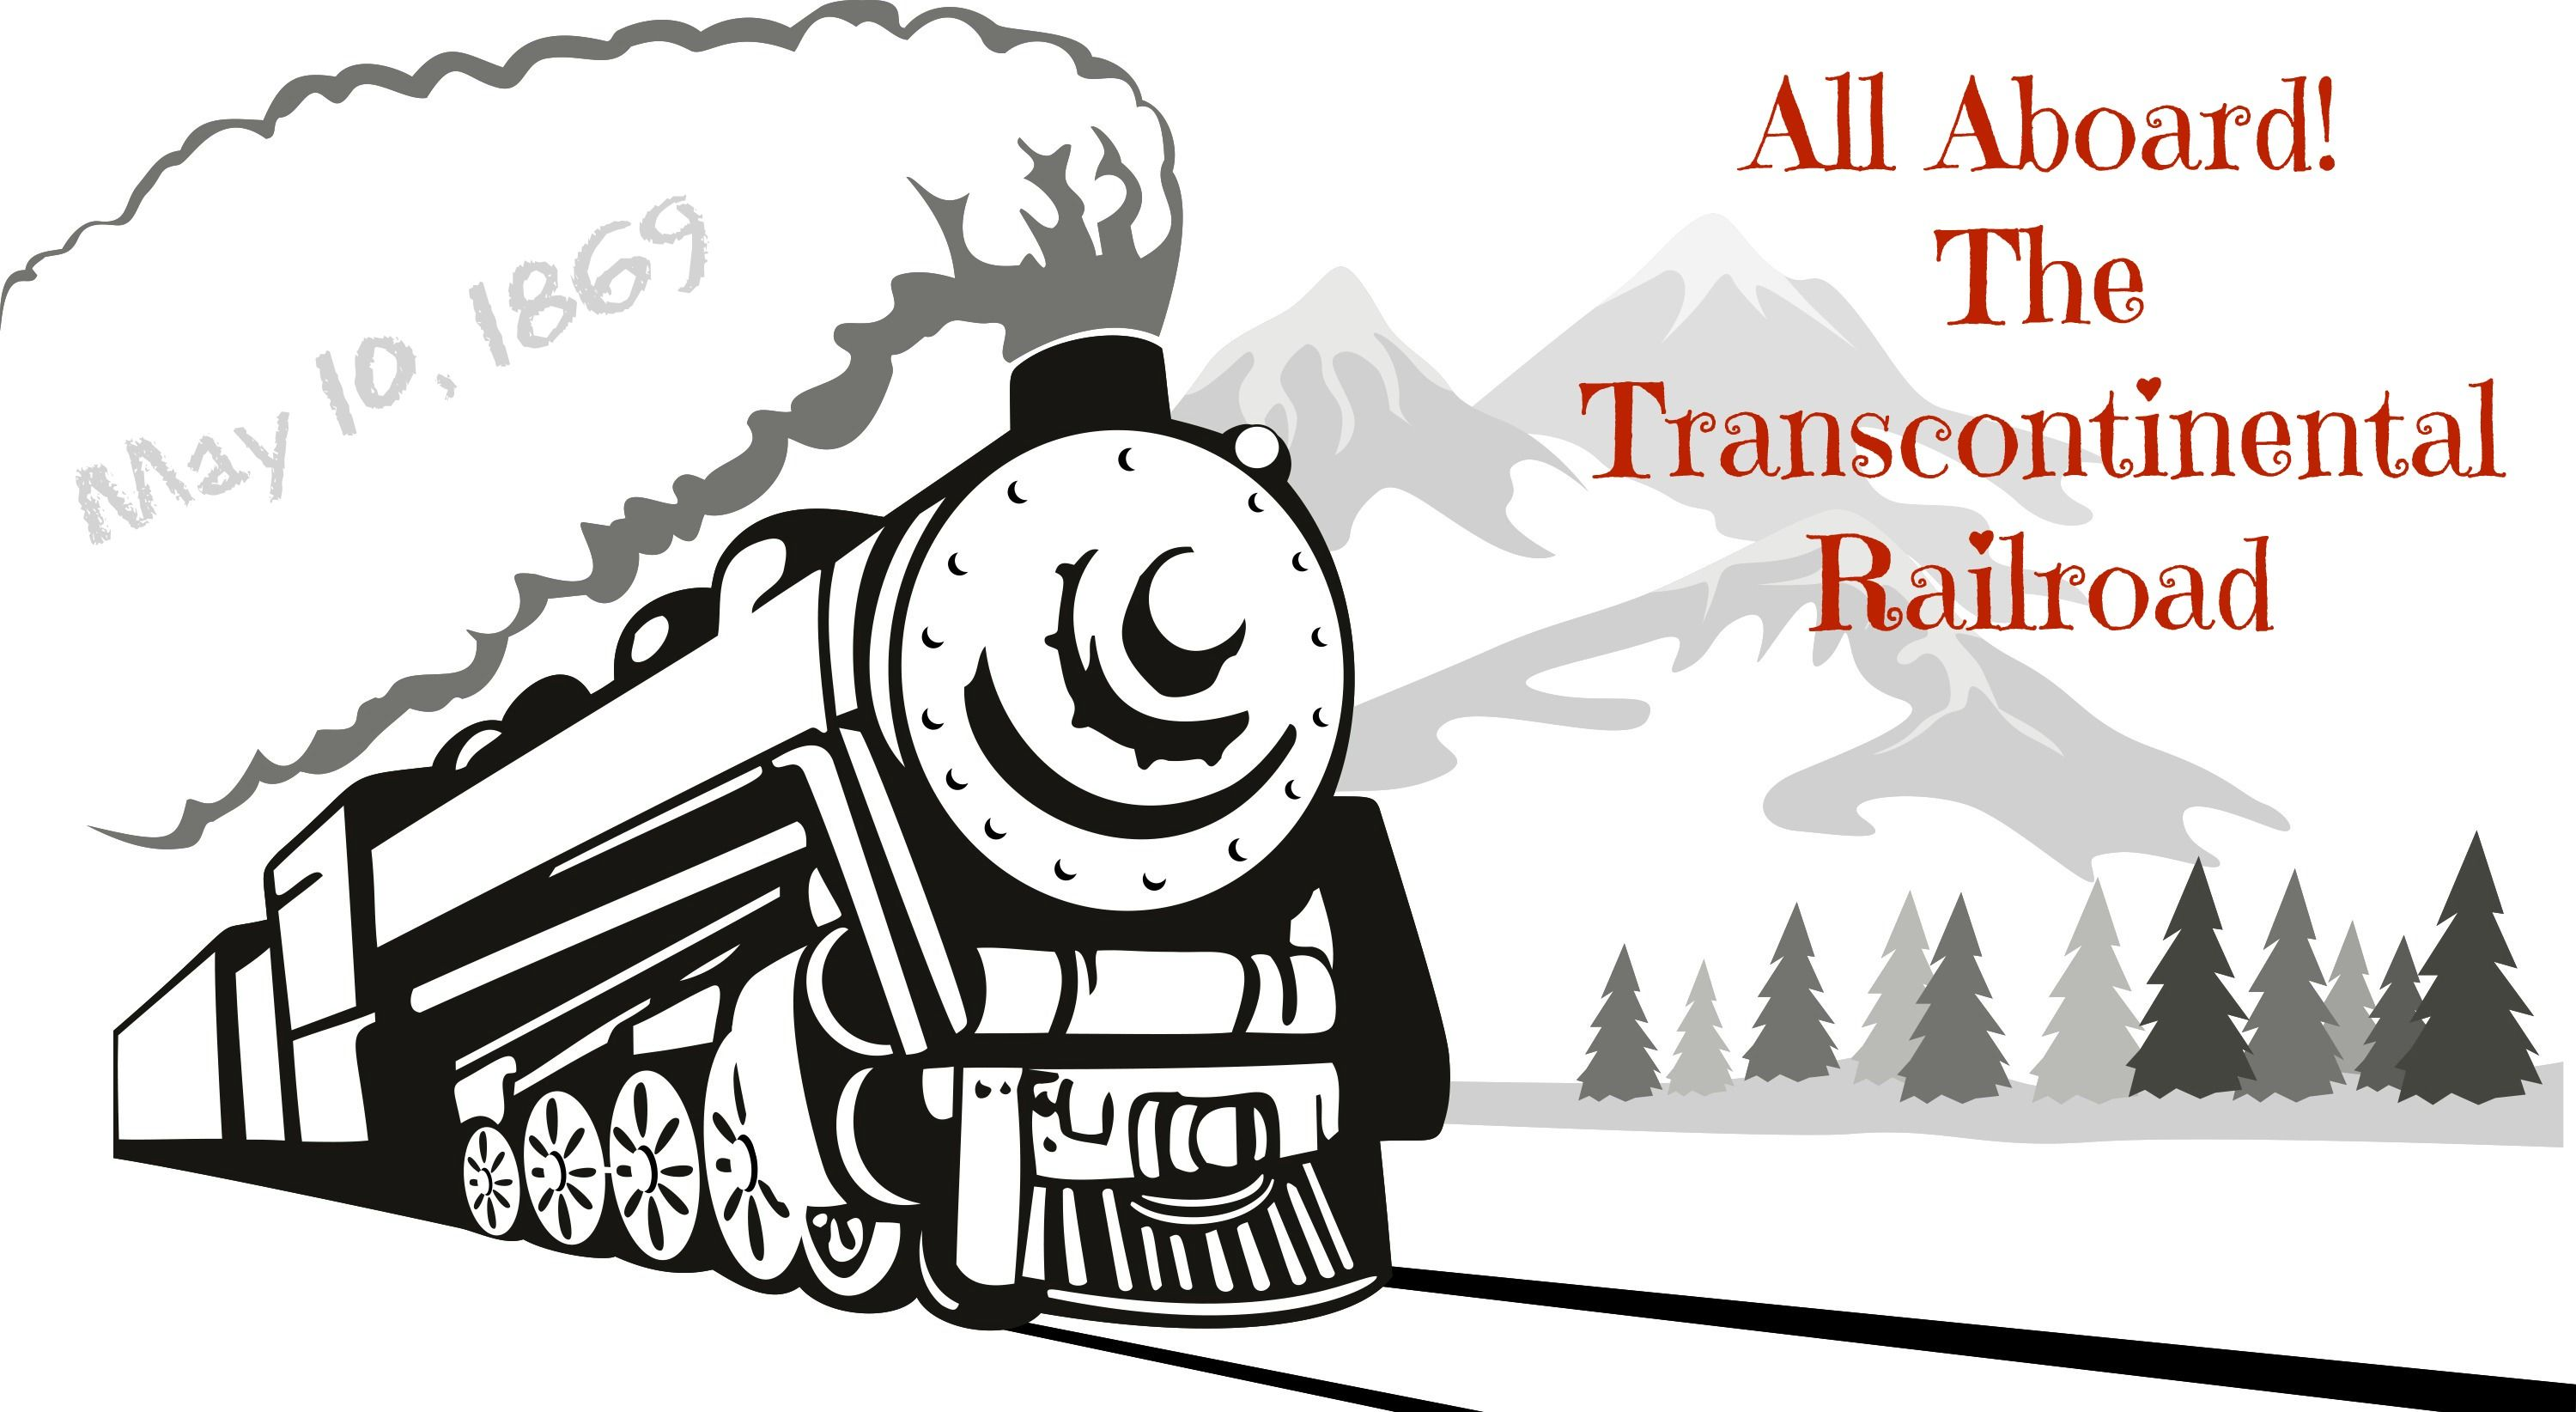 picture royalty free All aboard the writing. Transcontinental railroad clipart